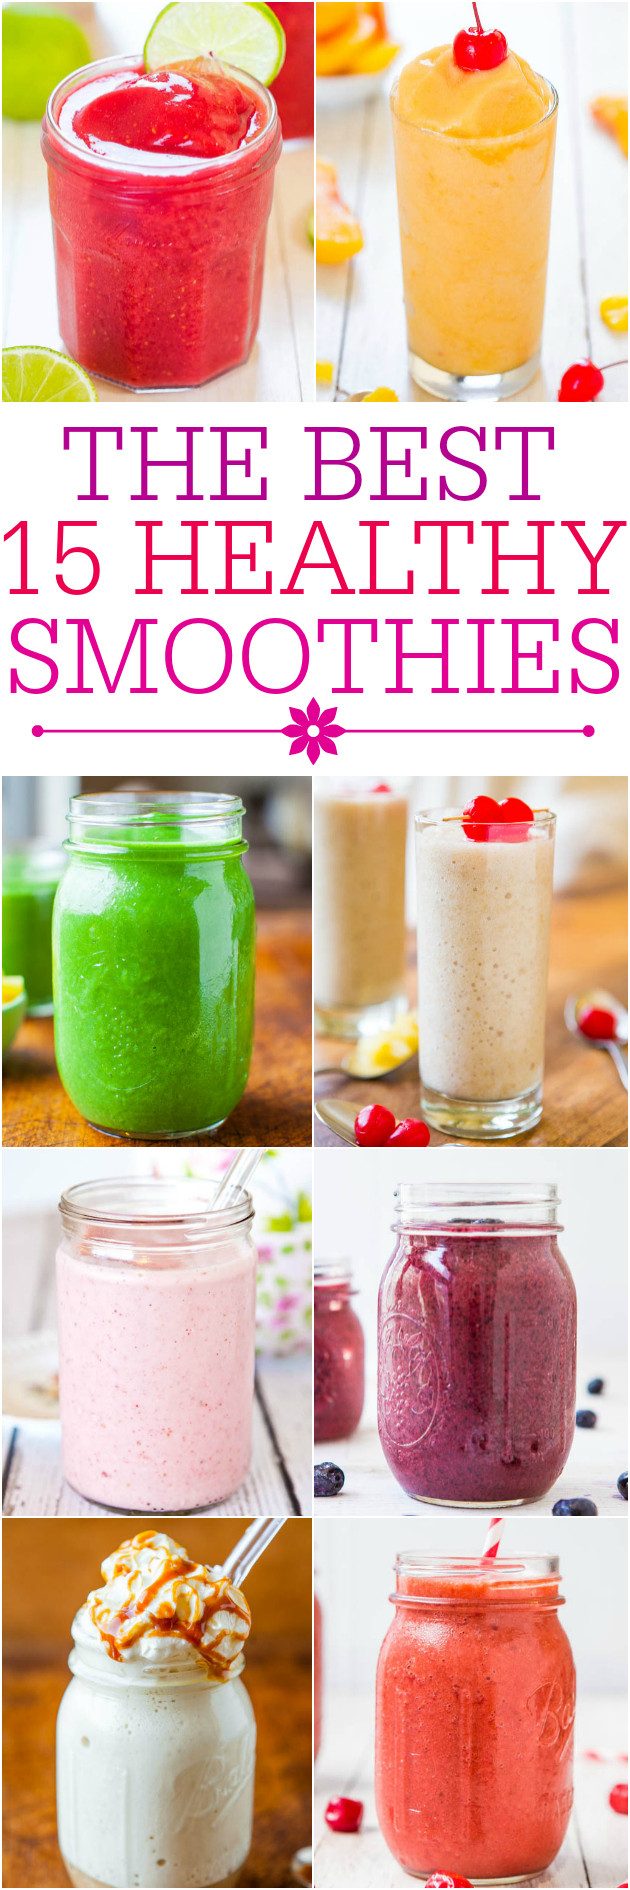 Healthiest Smoothie Recipes  Fruit and Yogurt Smoothie Averie Cooks